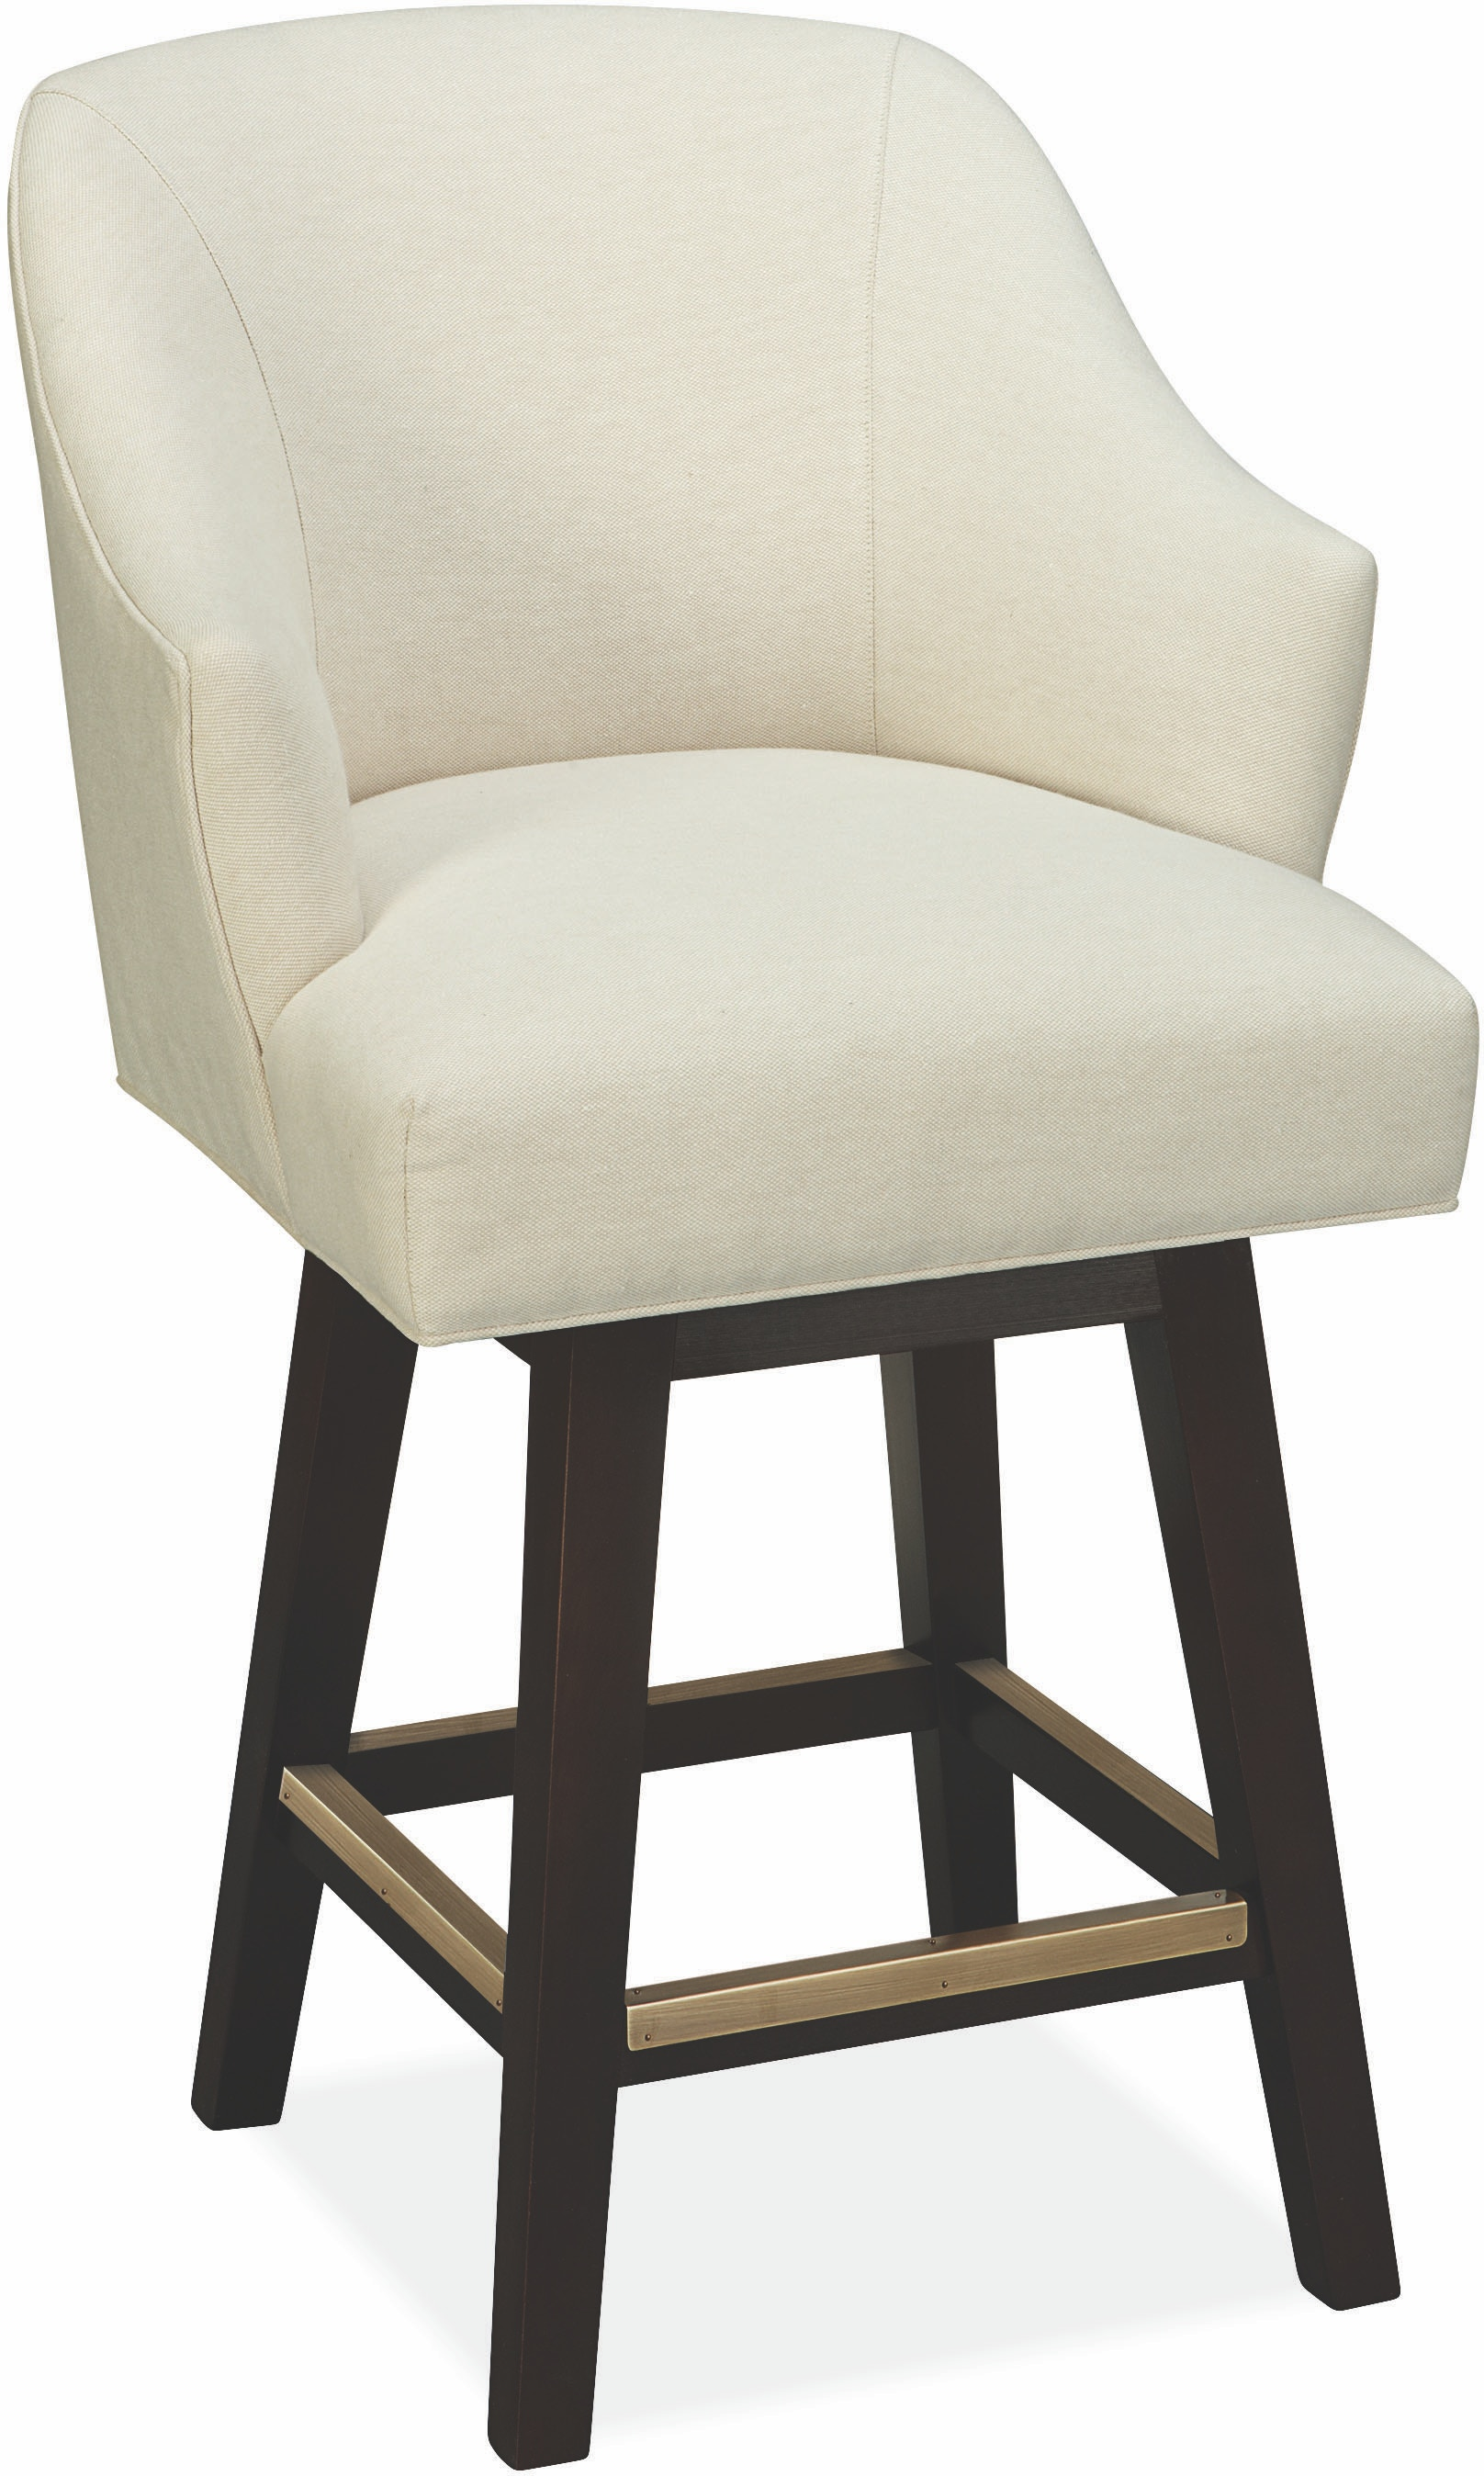 Lee Industries Bar And Game Room Swivel Counter Stool 5002